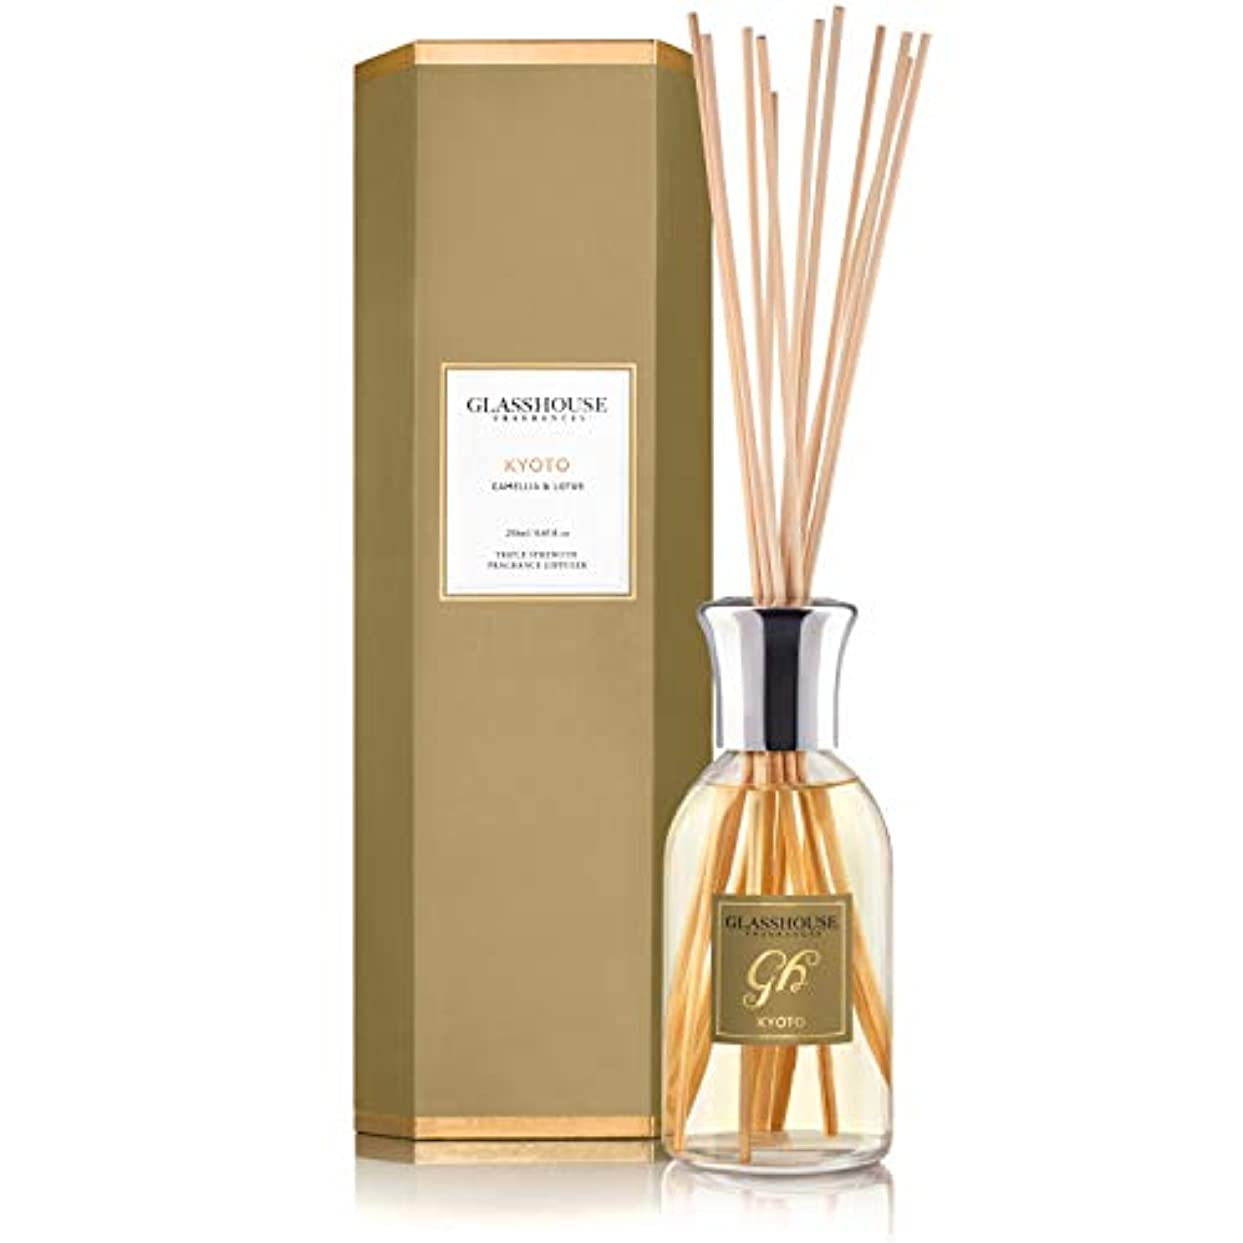 美徳数学移住するグラスハウス Triple Strength Fragrance Diffuser - Kyoto (Camellia & Lotus) 250ml/8.45oz並行輸入品